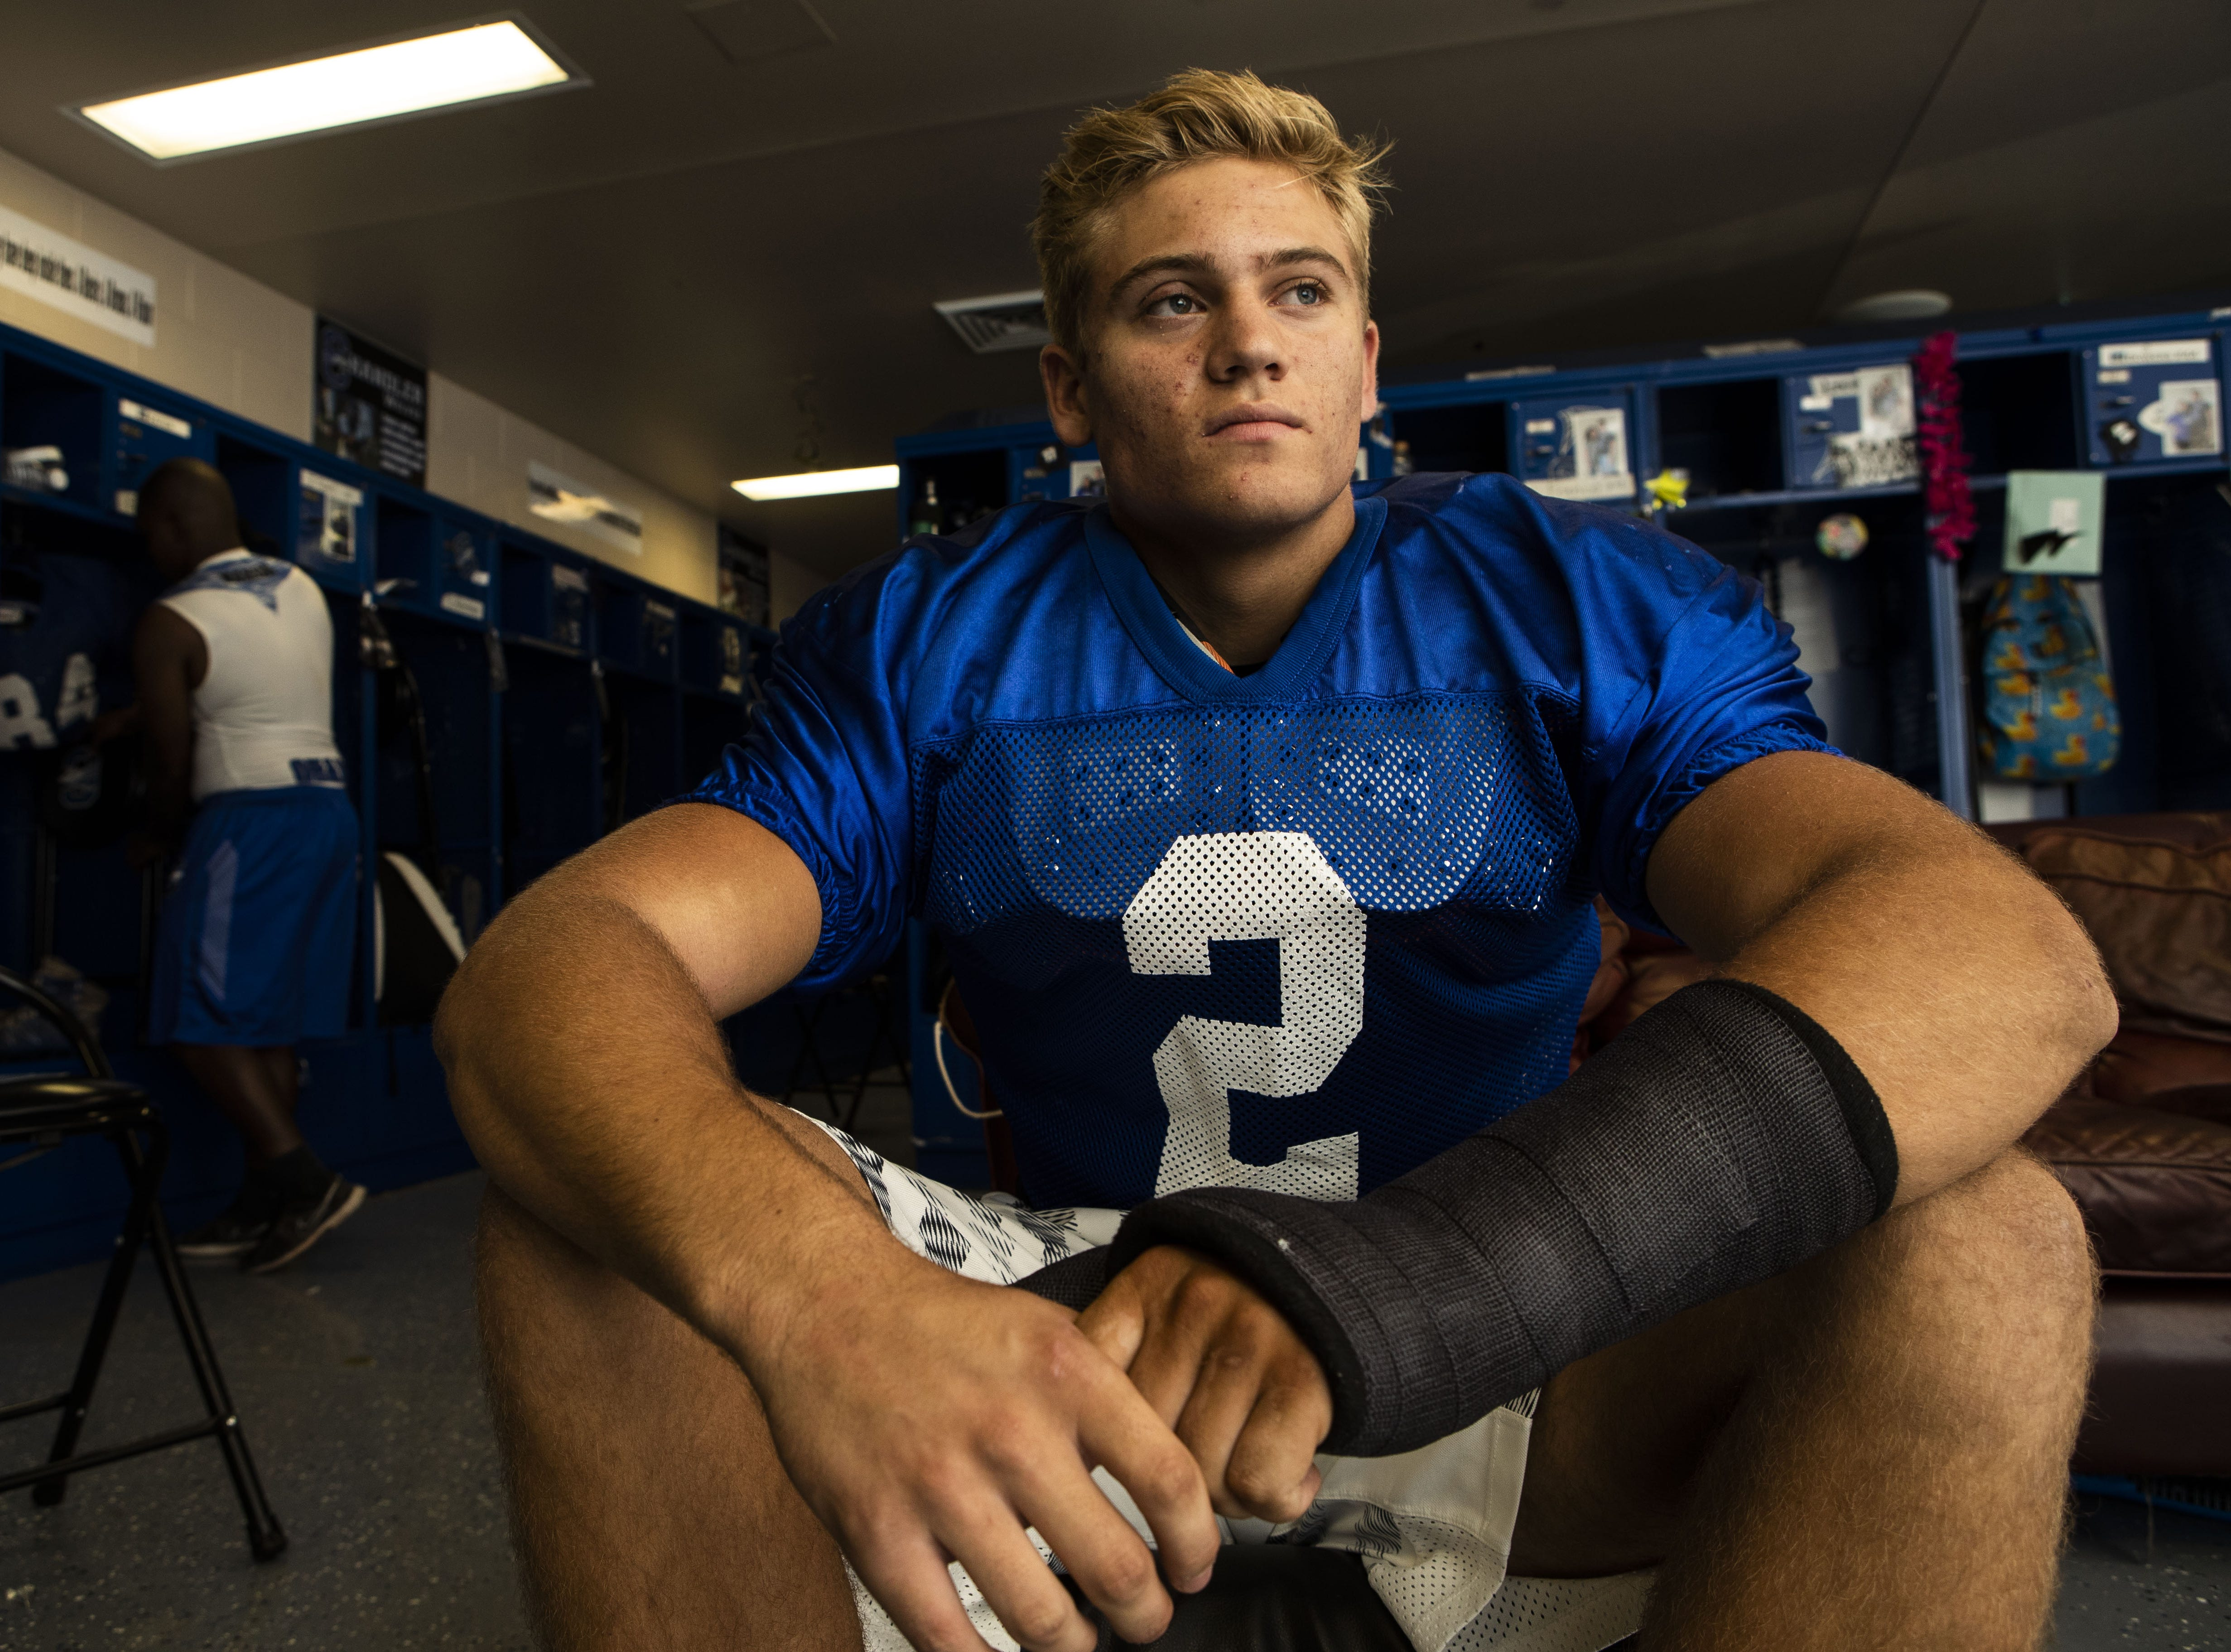 Chandler High School football player Line Backer Tate Romney will opting for church over college out of high school, going on 2-year missions before starting college career.